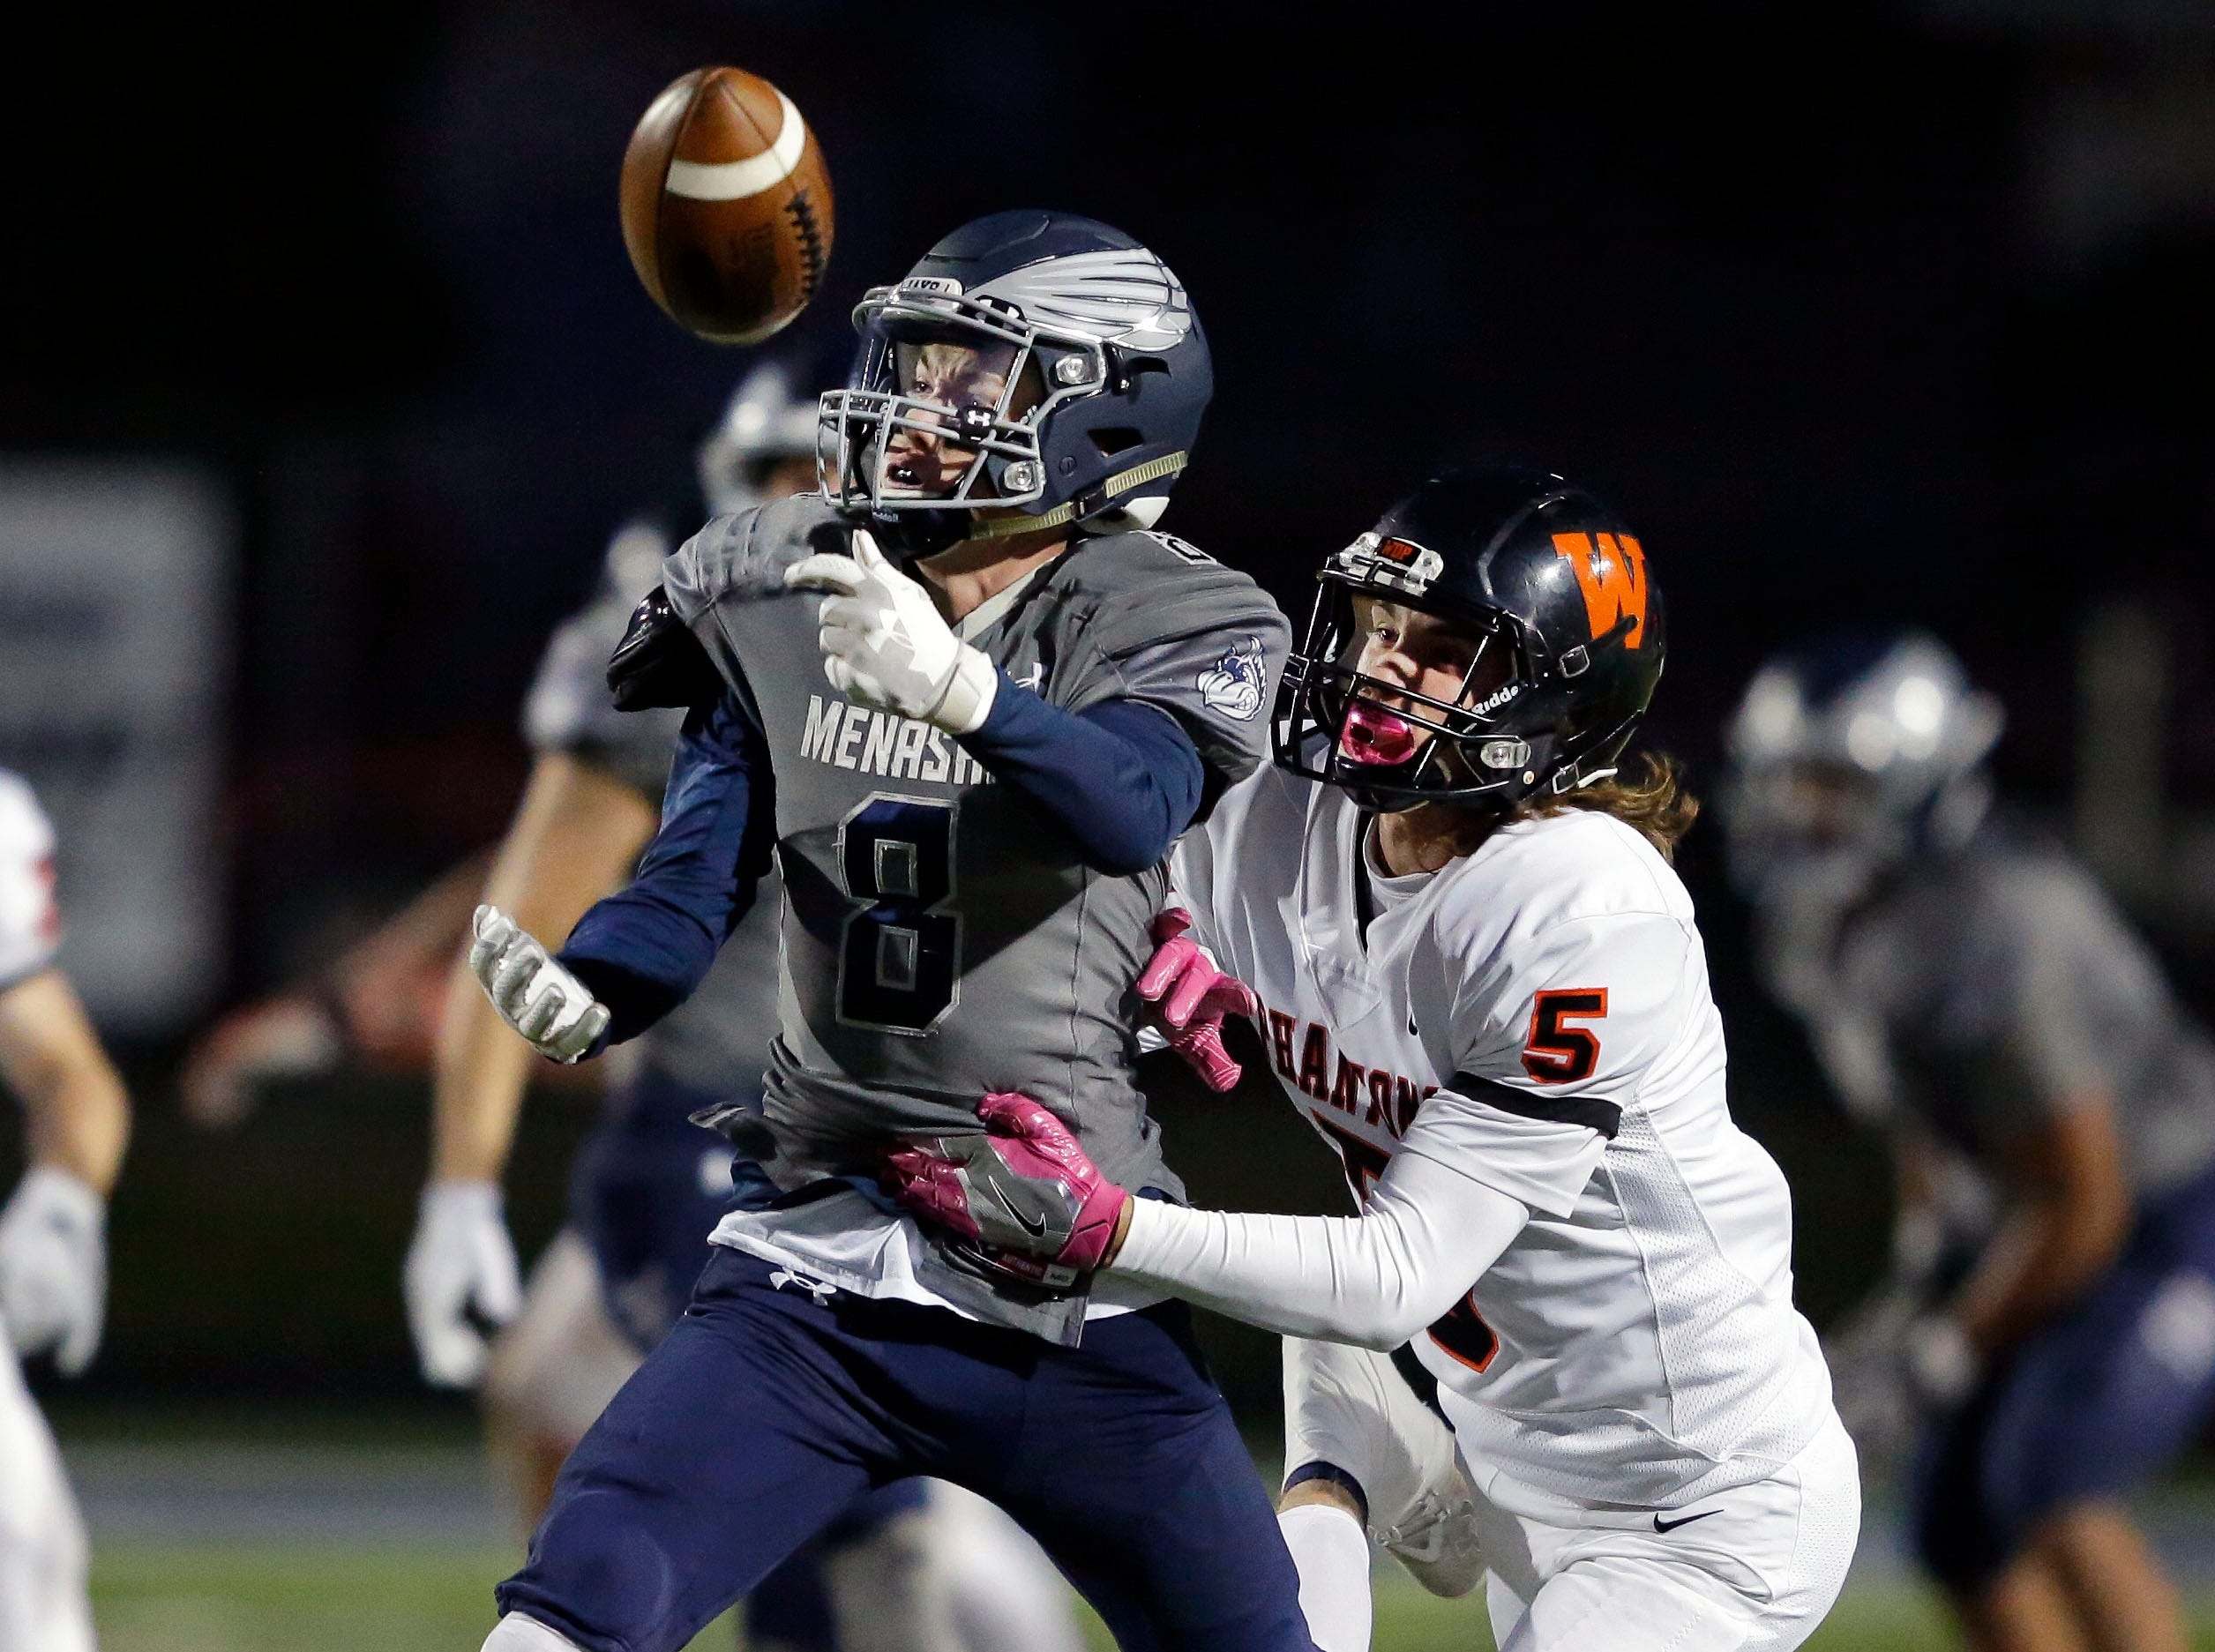 A pass is just out of reach for Brady Jurgella of Menasha as he is defended by Garrett Kempen of West De Pere in a Bay Conference football game Friday, September 28, 2018, at Calder Stadium in Menasha, Wis.Ron Page/USA TODAY NETWORK-Wisconsin